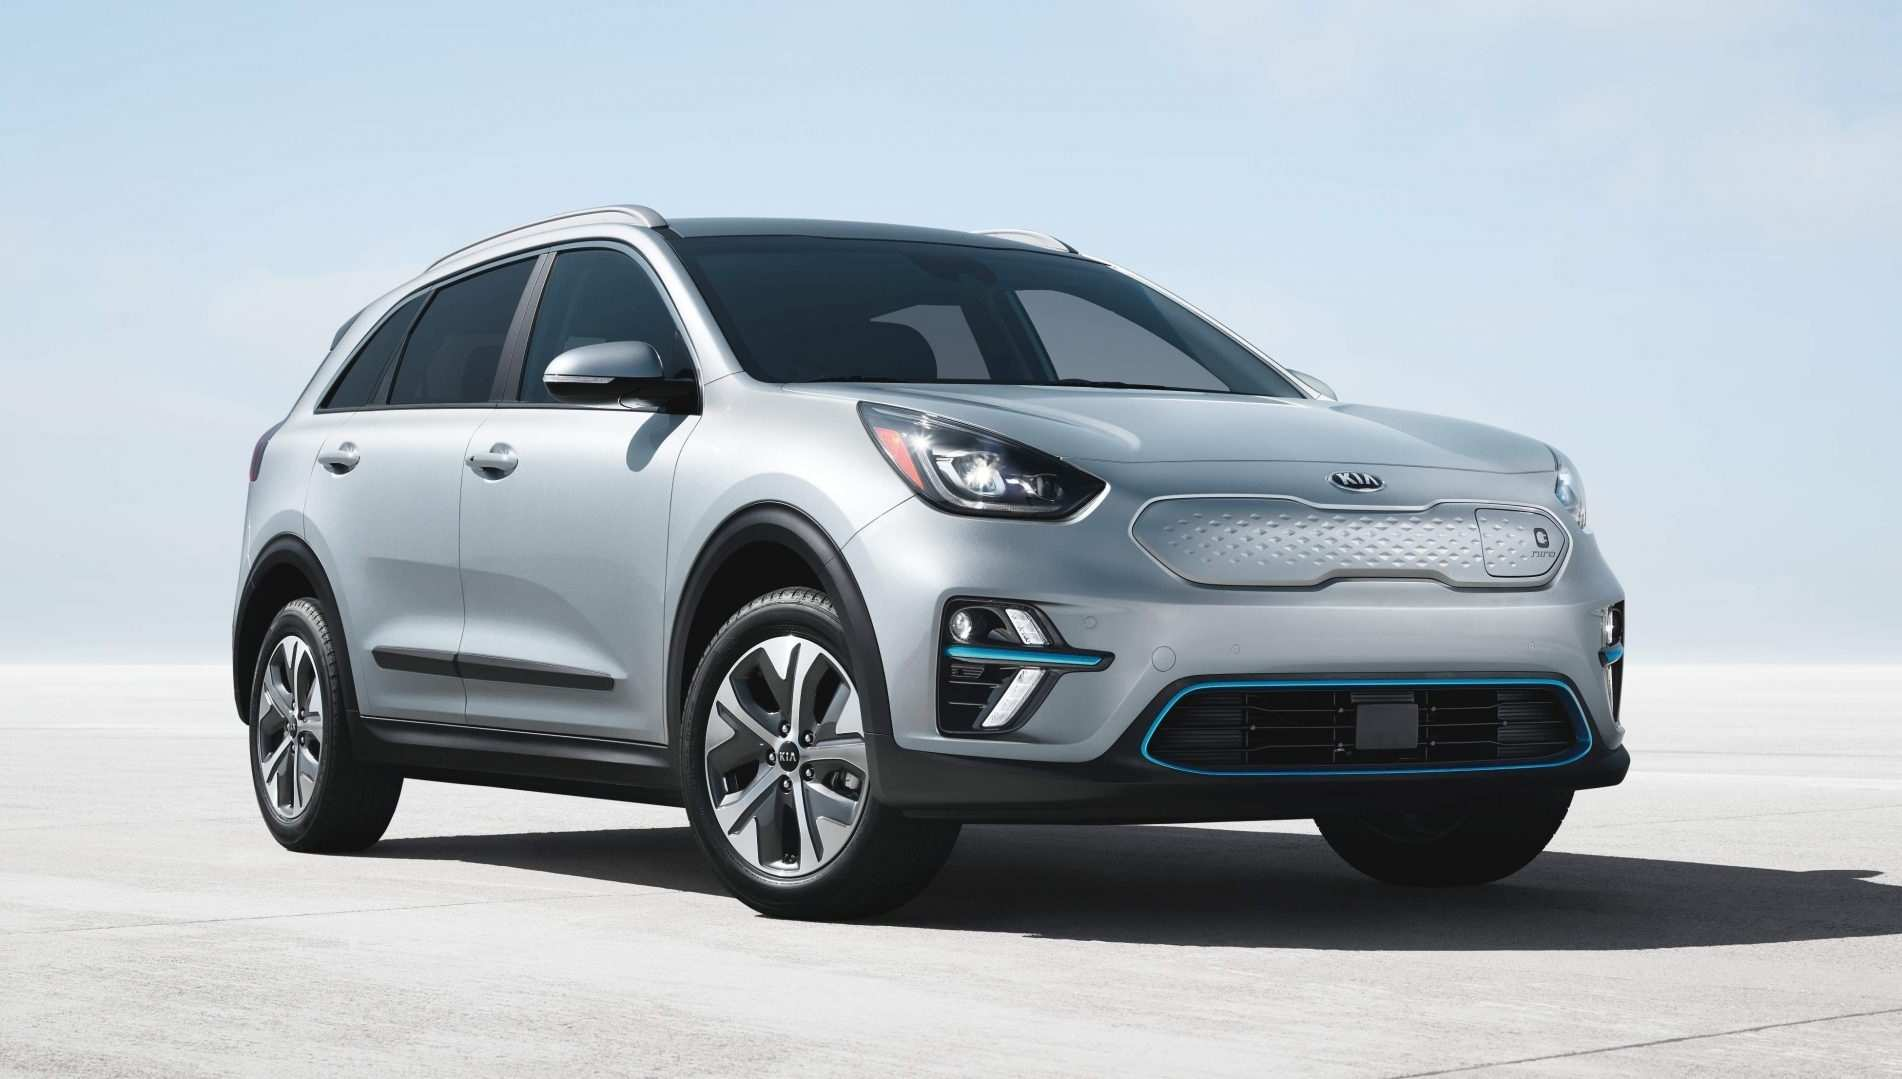 81 The Kia Niro 2020 Release Date Speed Test